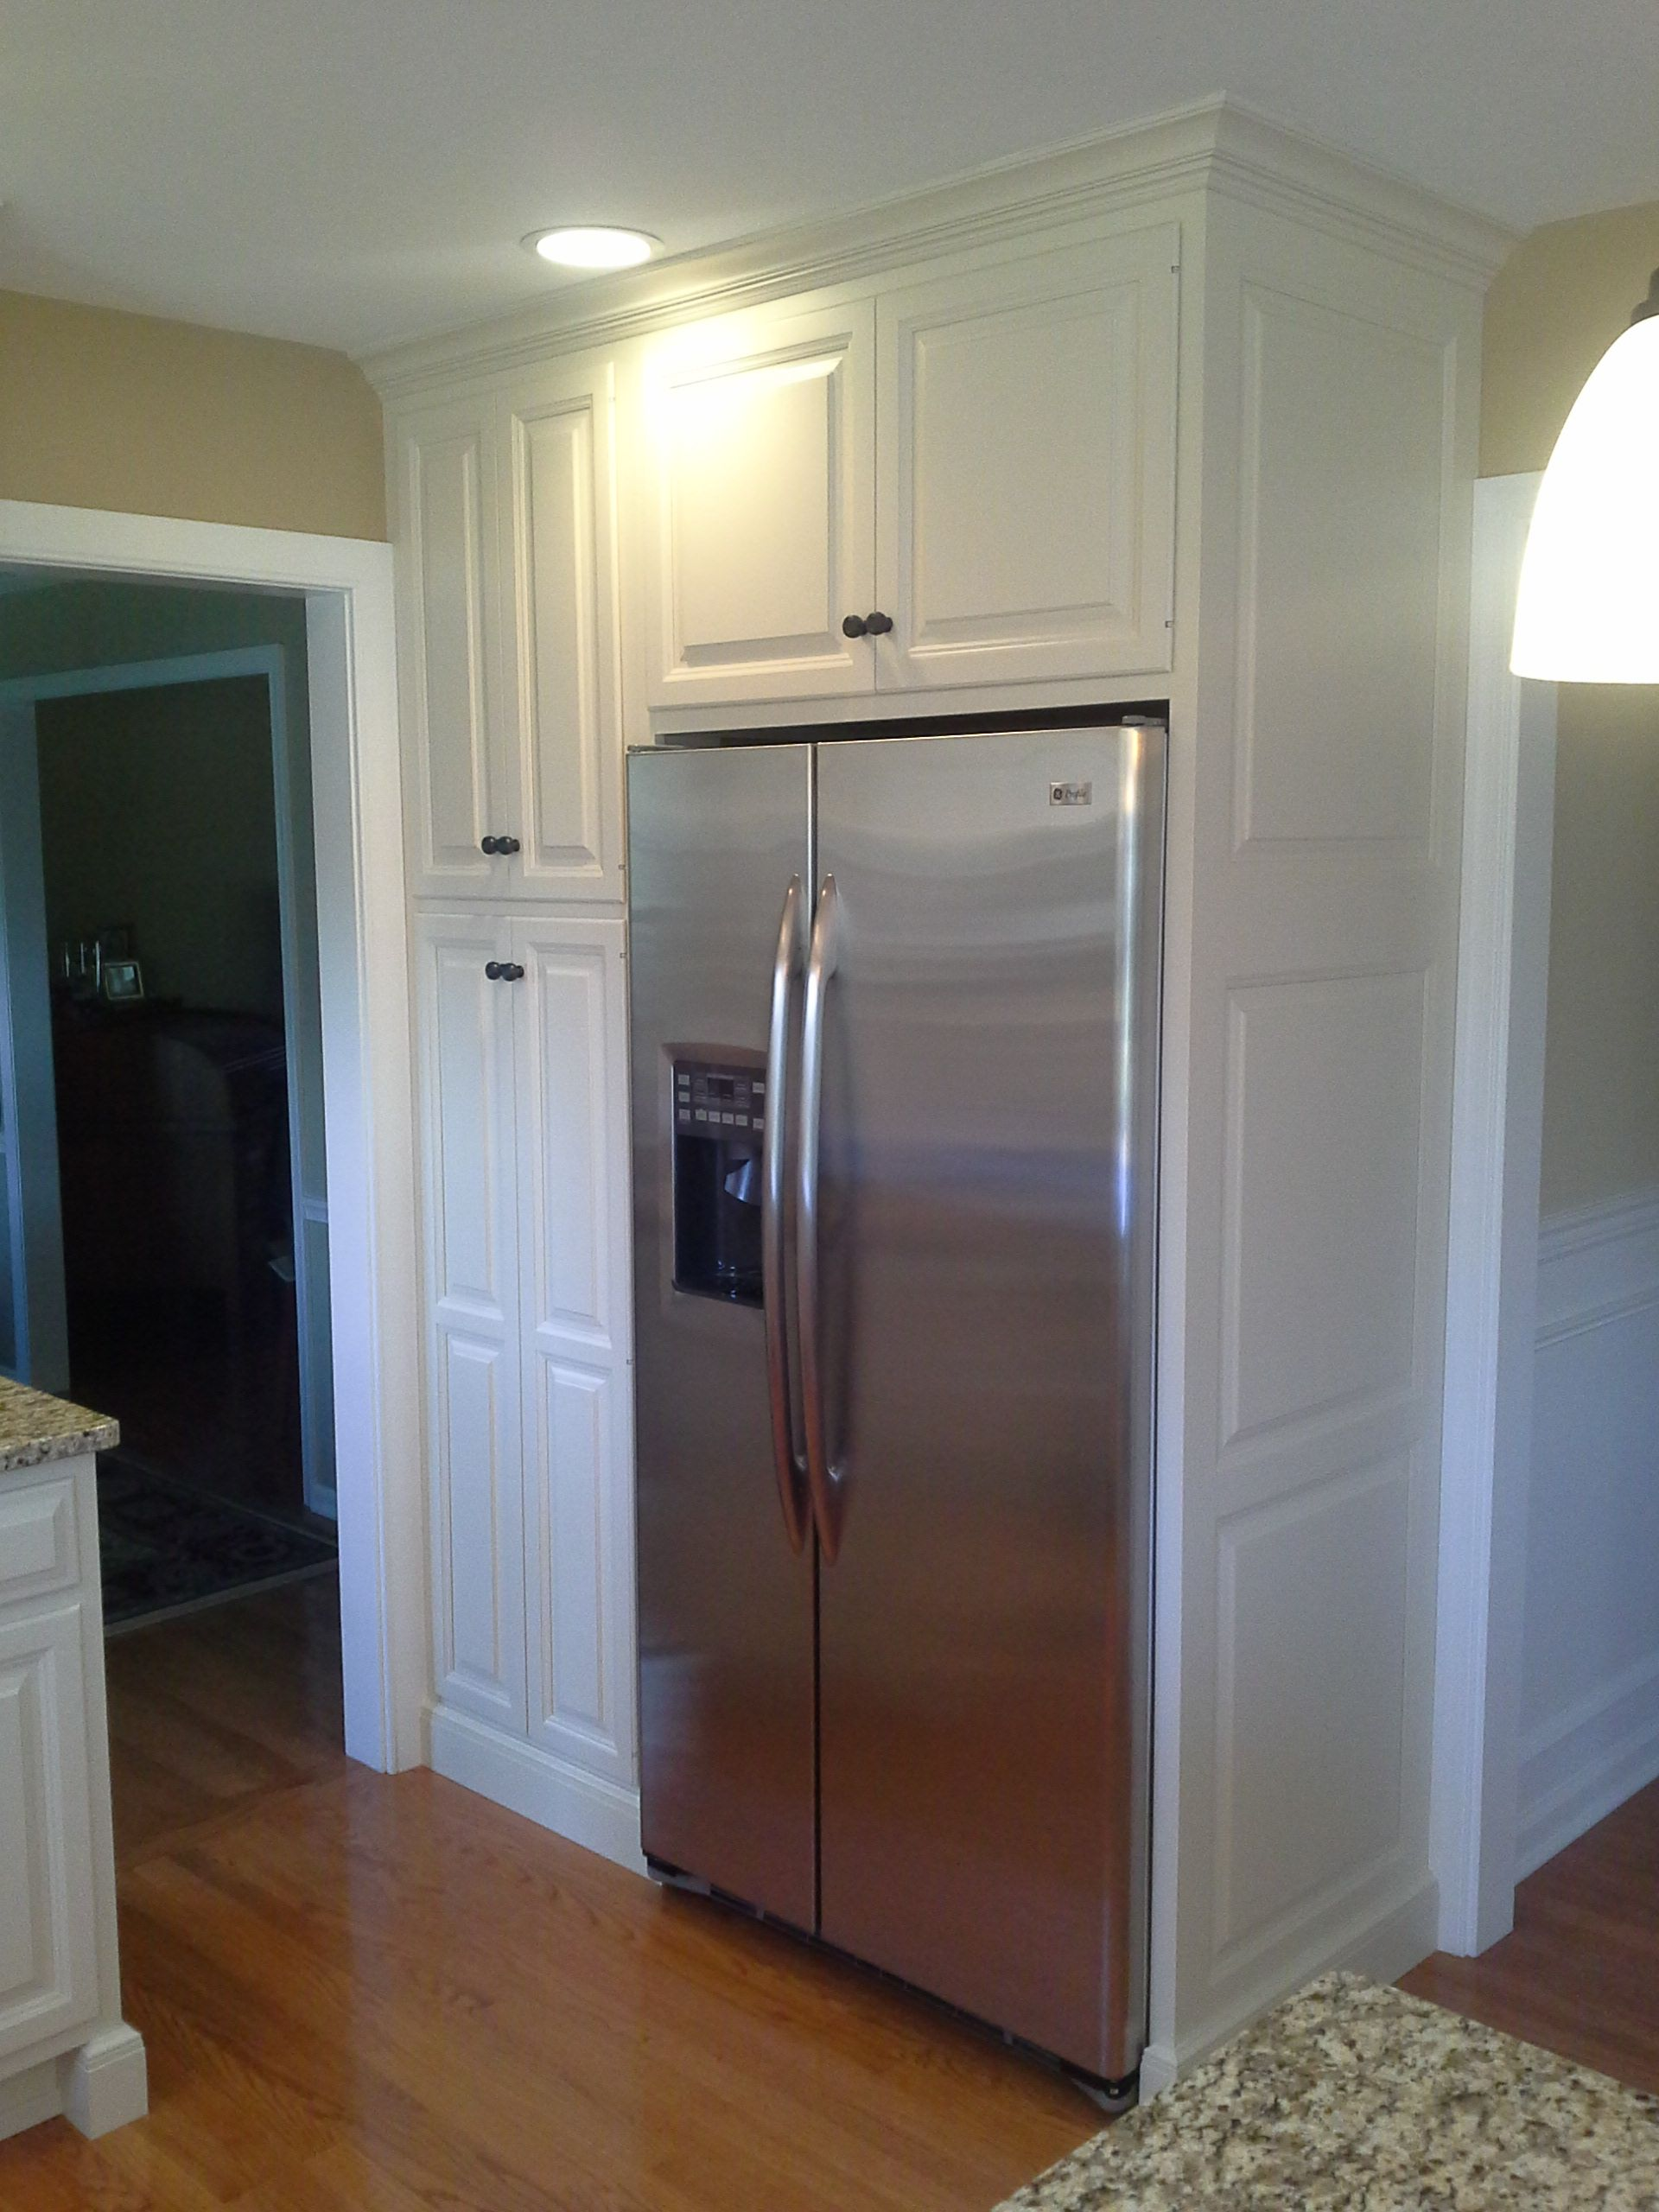 Close Up Of Stainless Steel Refrigerator And White Painted Pantry Cabinet With Wainscot